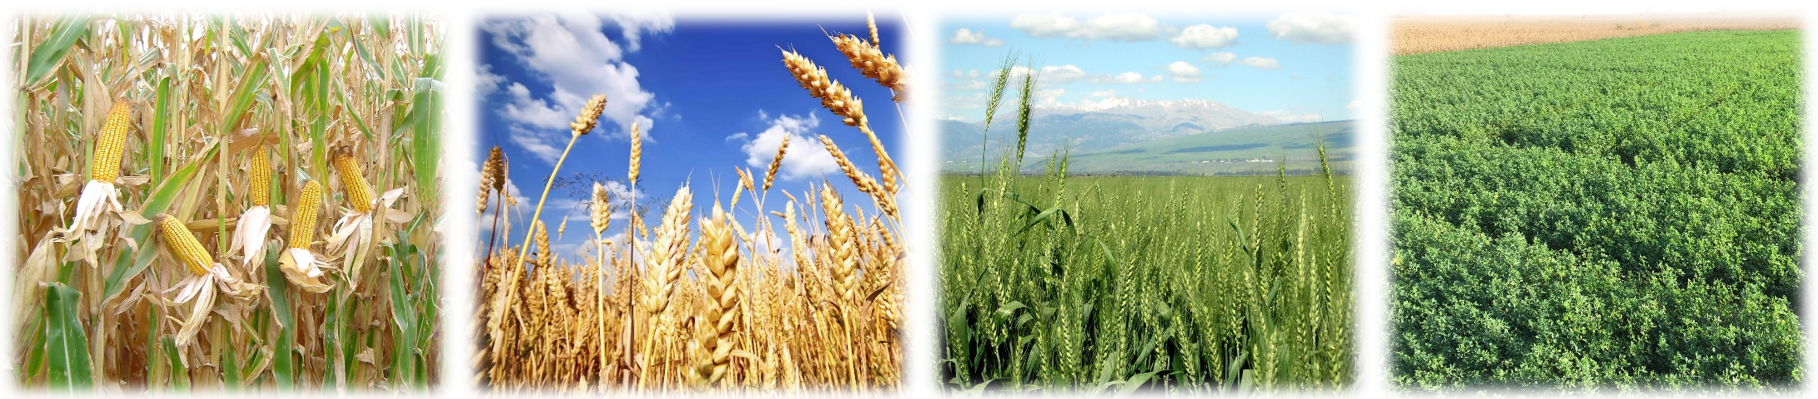 Natural Resources - Optimum utilization of the limited natural resources...